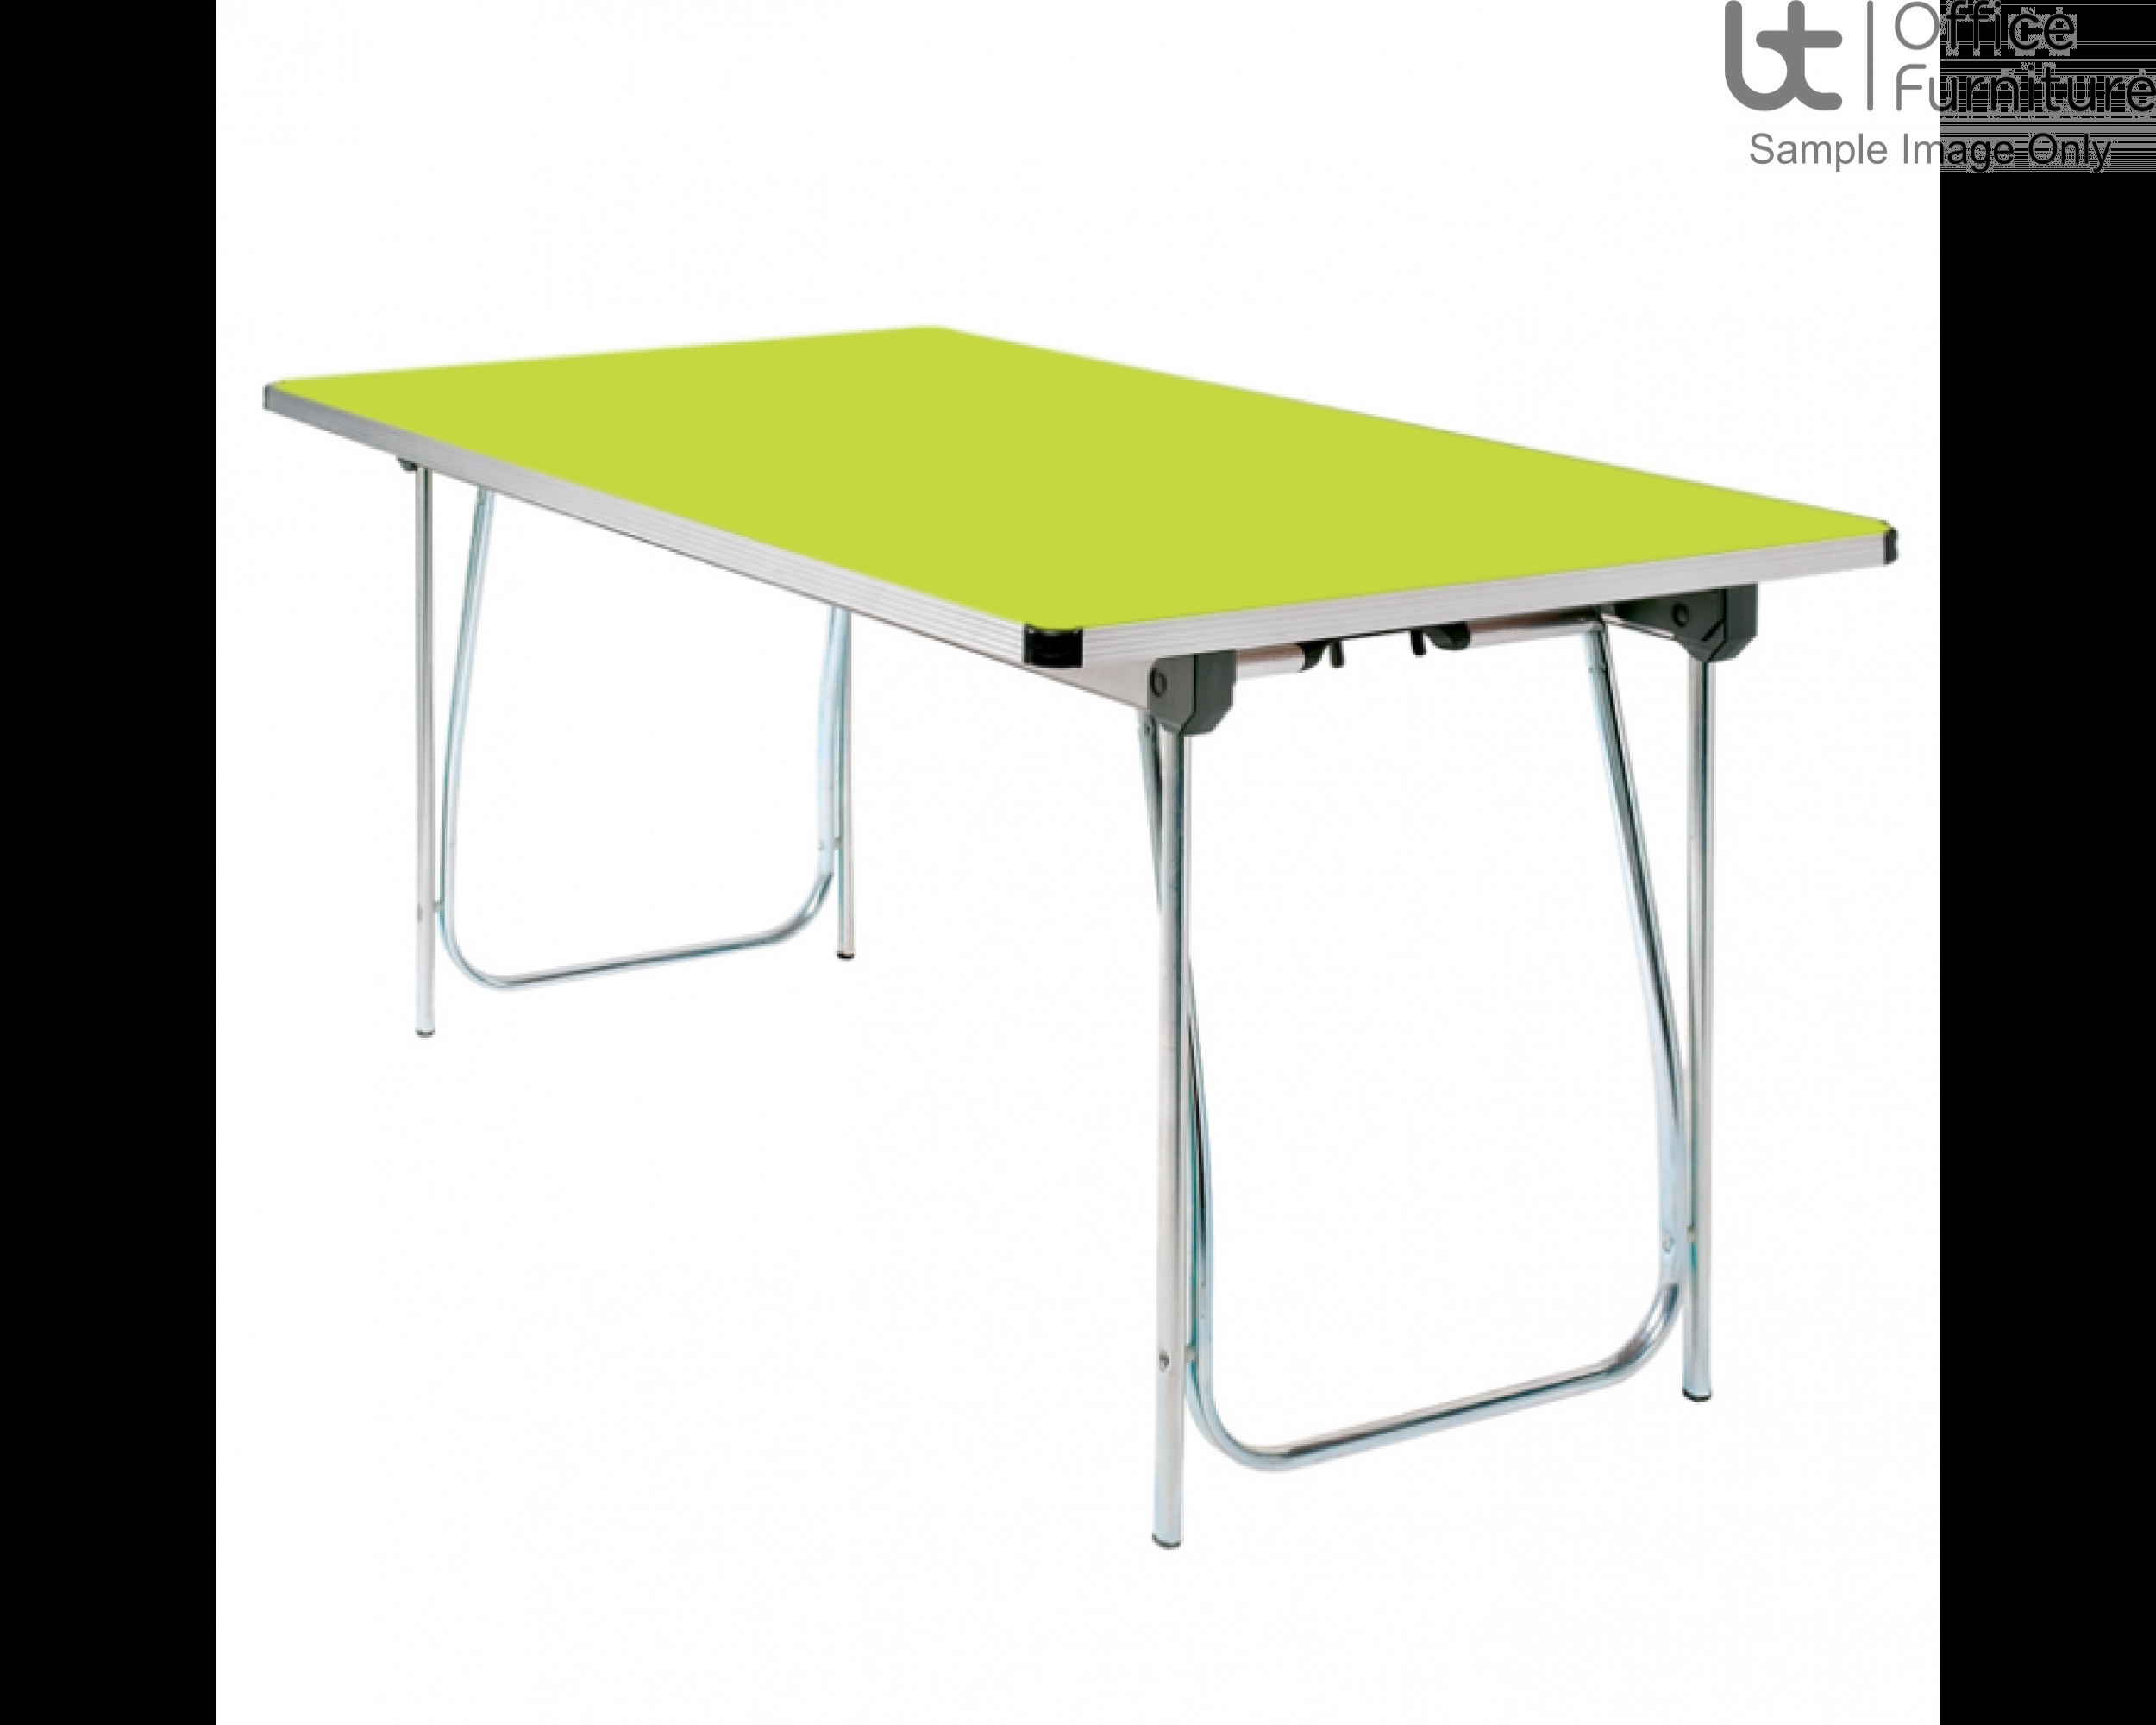 Universal Dining/Cafeteria/Canteen Folding Tables - 1830mm Wide